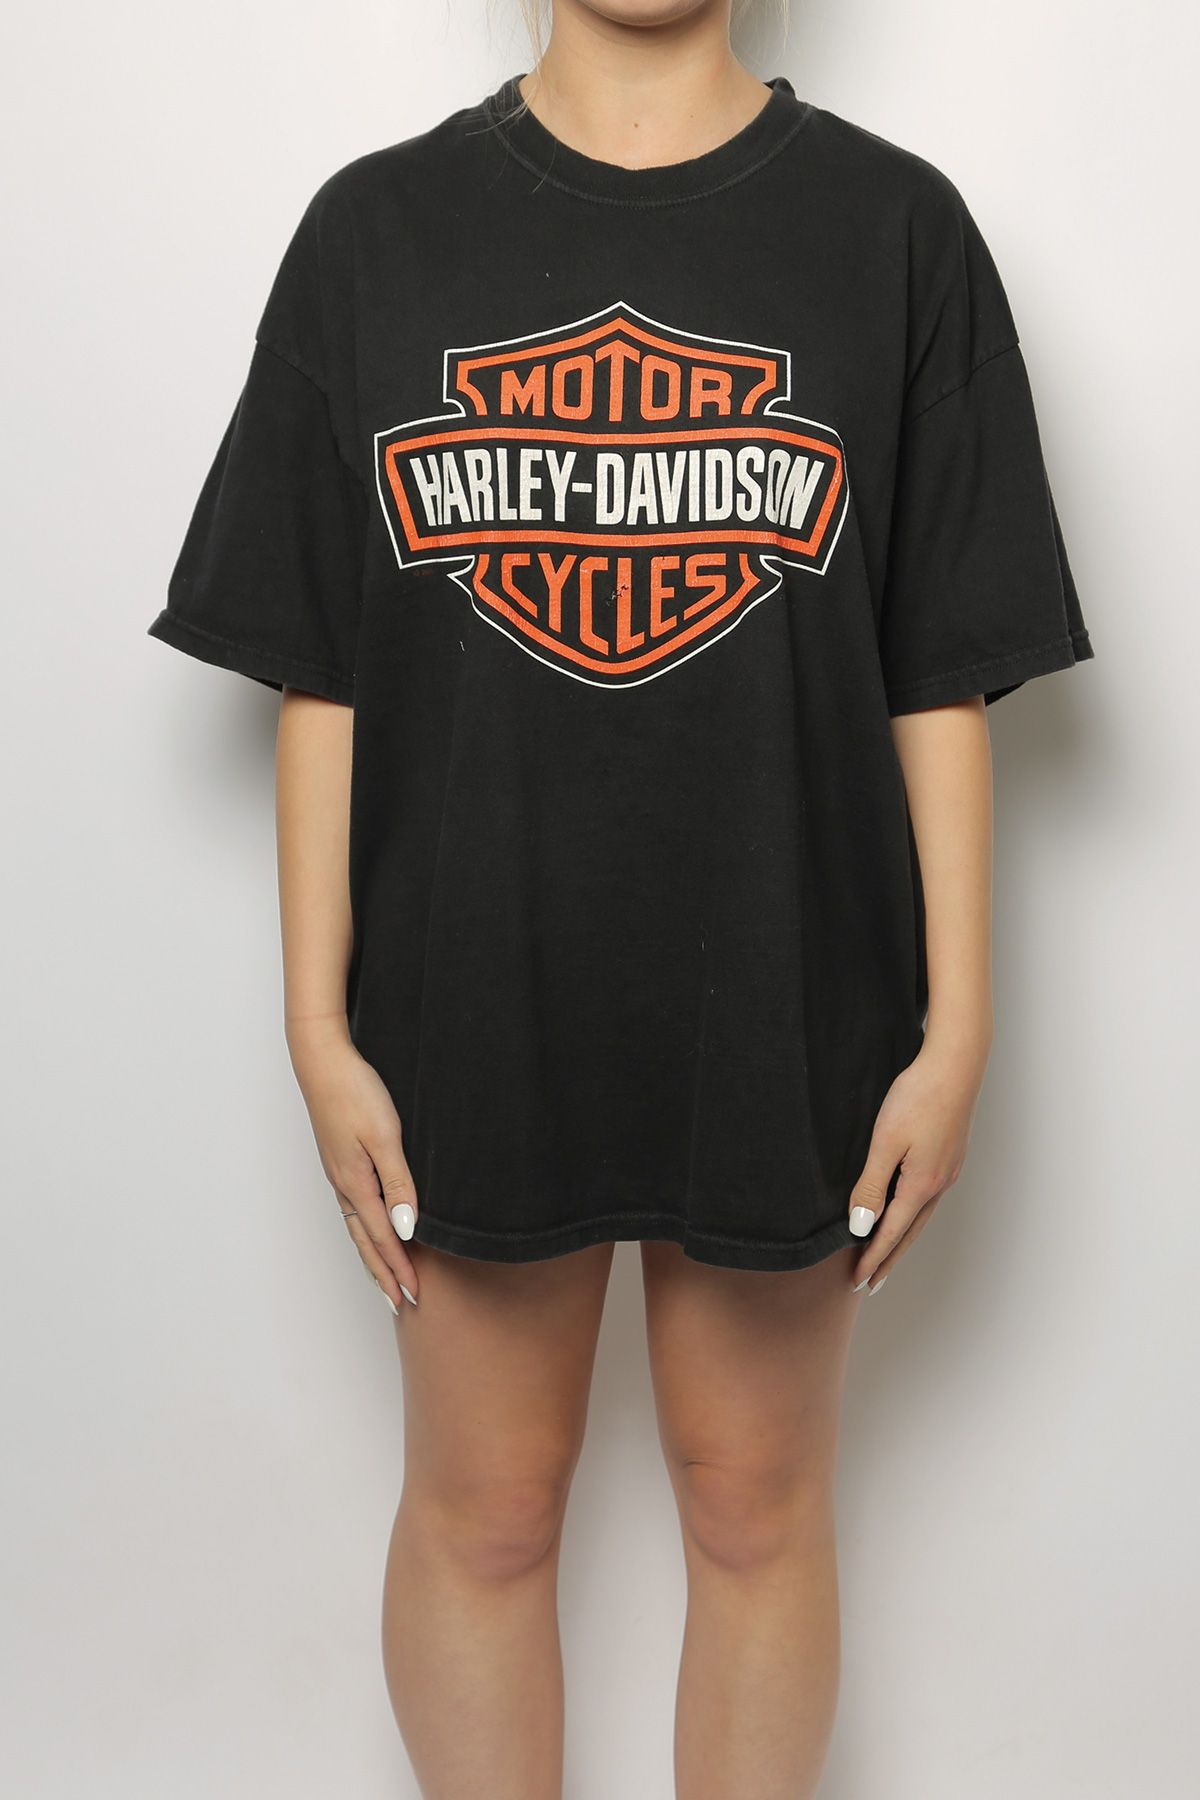 Pin By Dorota On New Harley Shirts Tee Shirt Outfit Tshirt Outfits